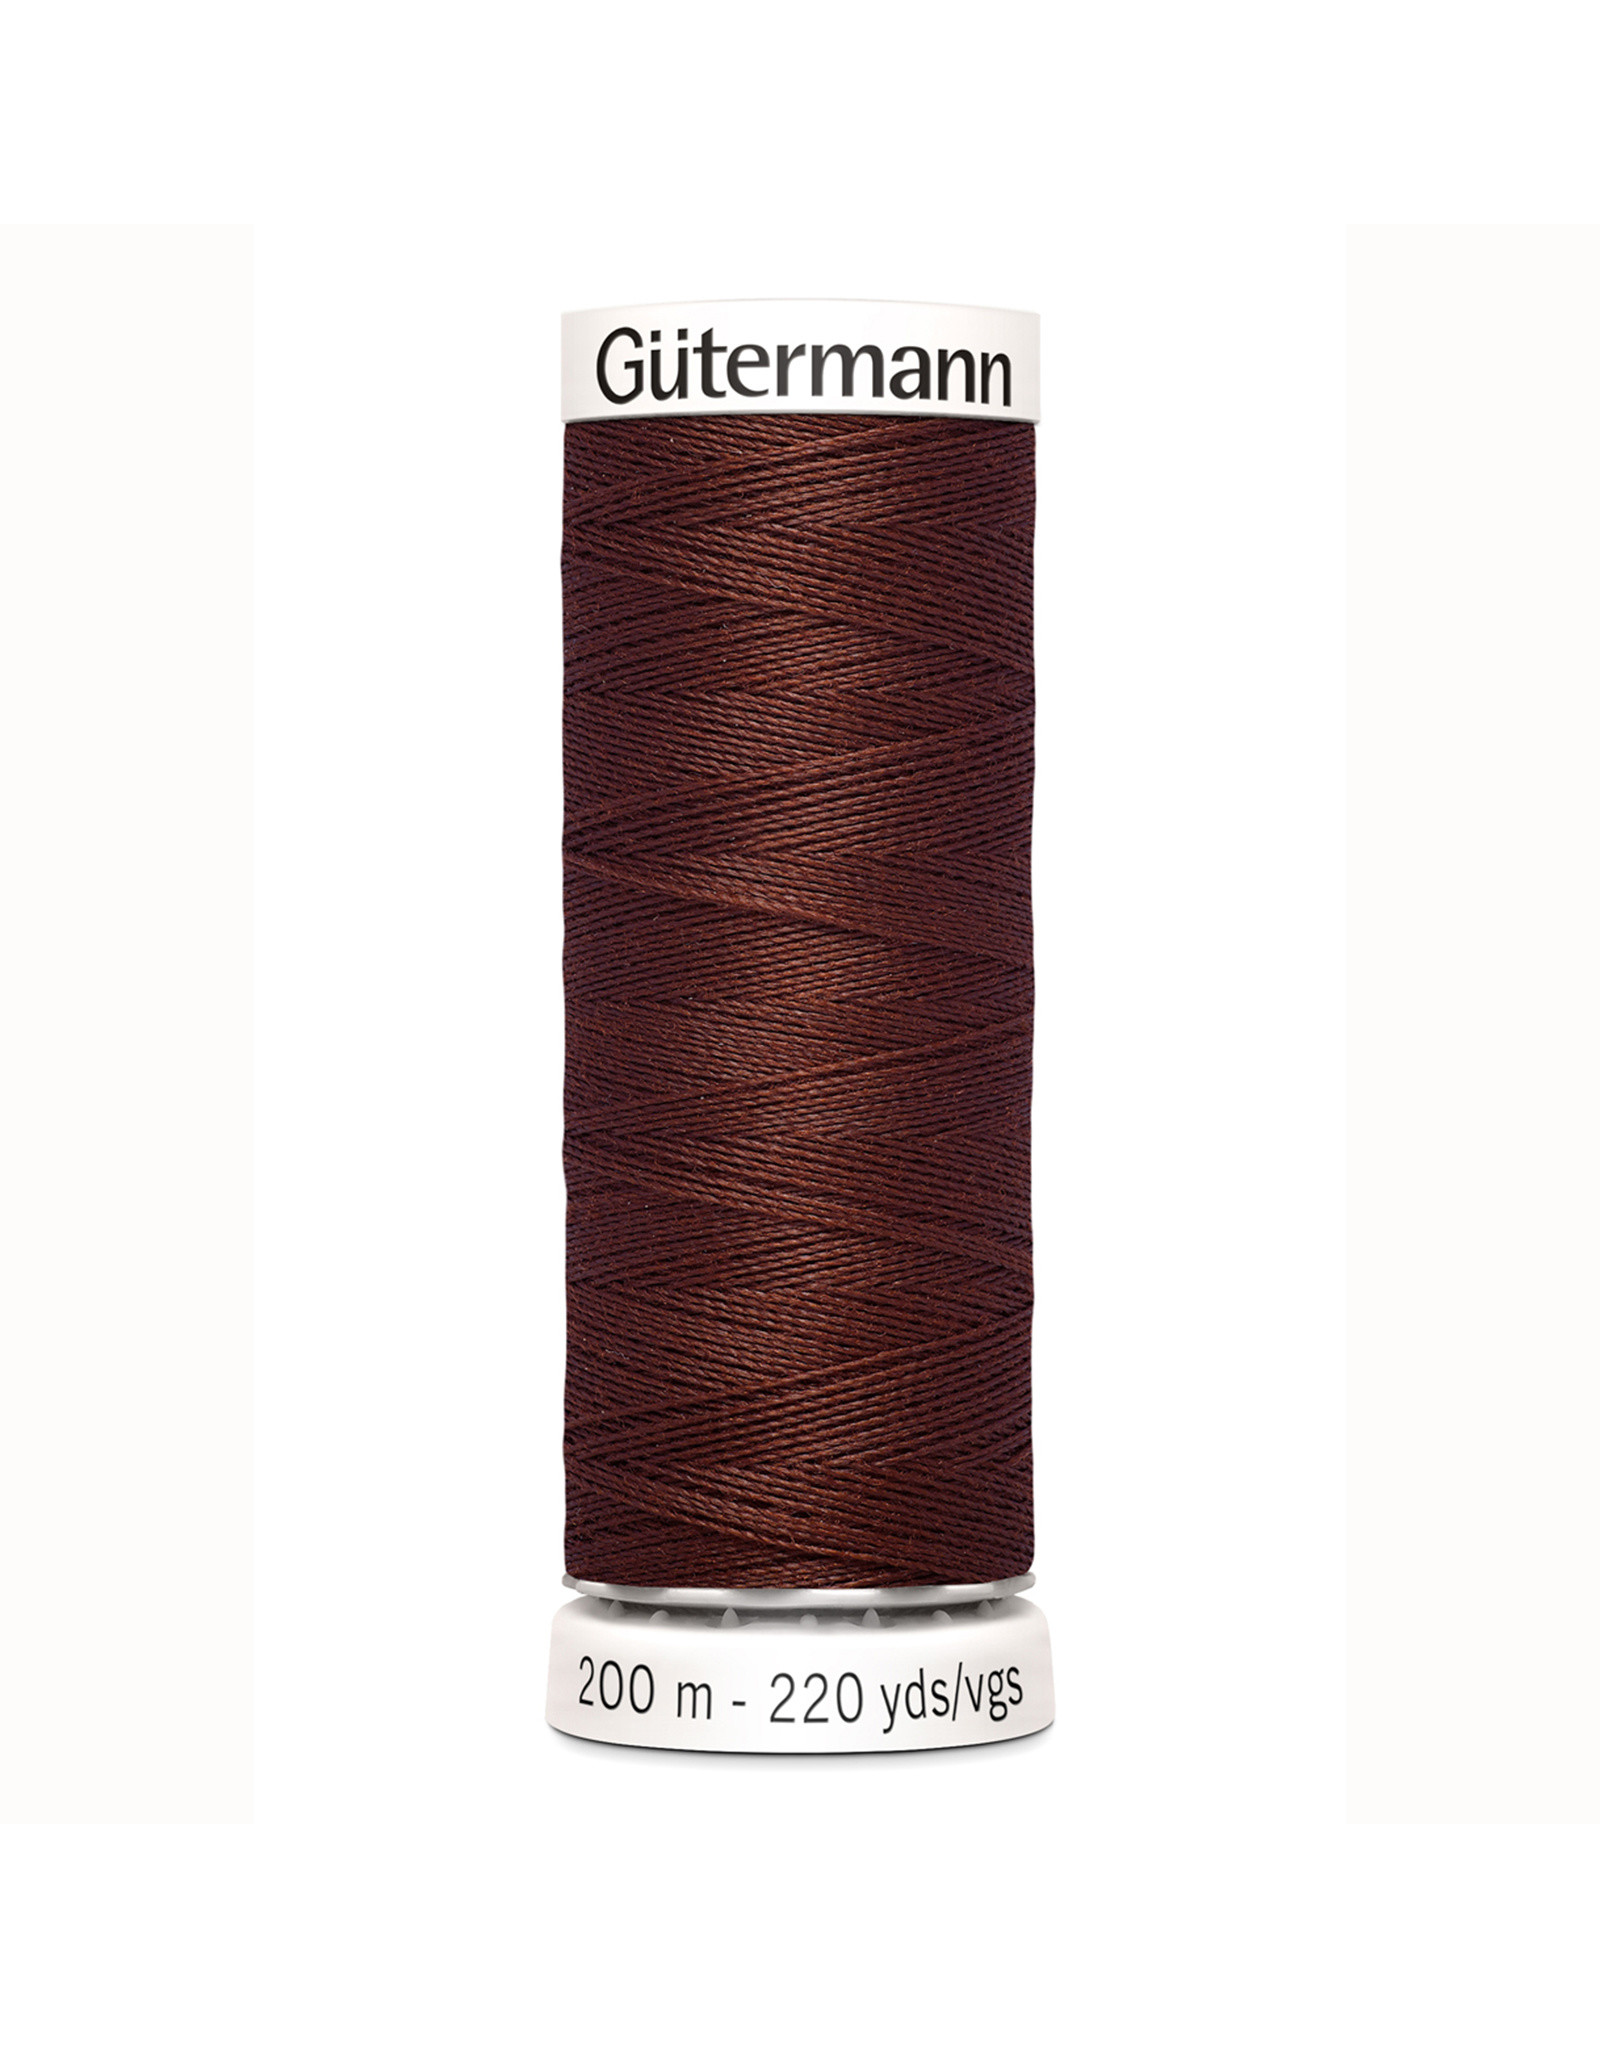 Gütermann Gütermann Sewing Thread 200 m - nr 230